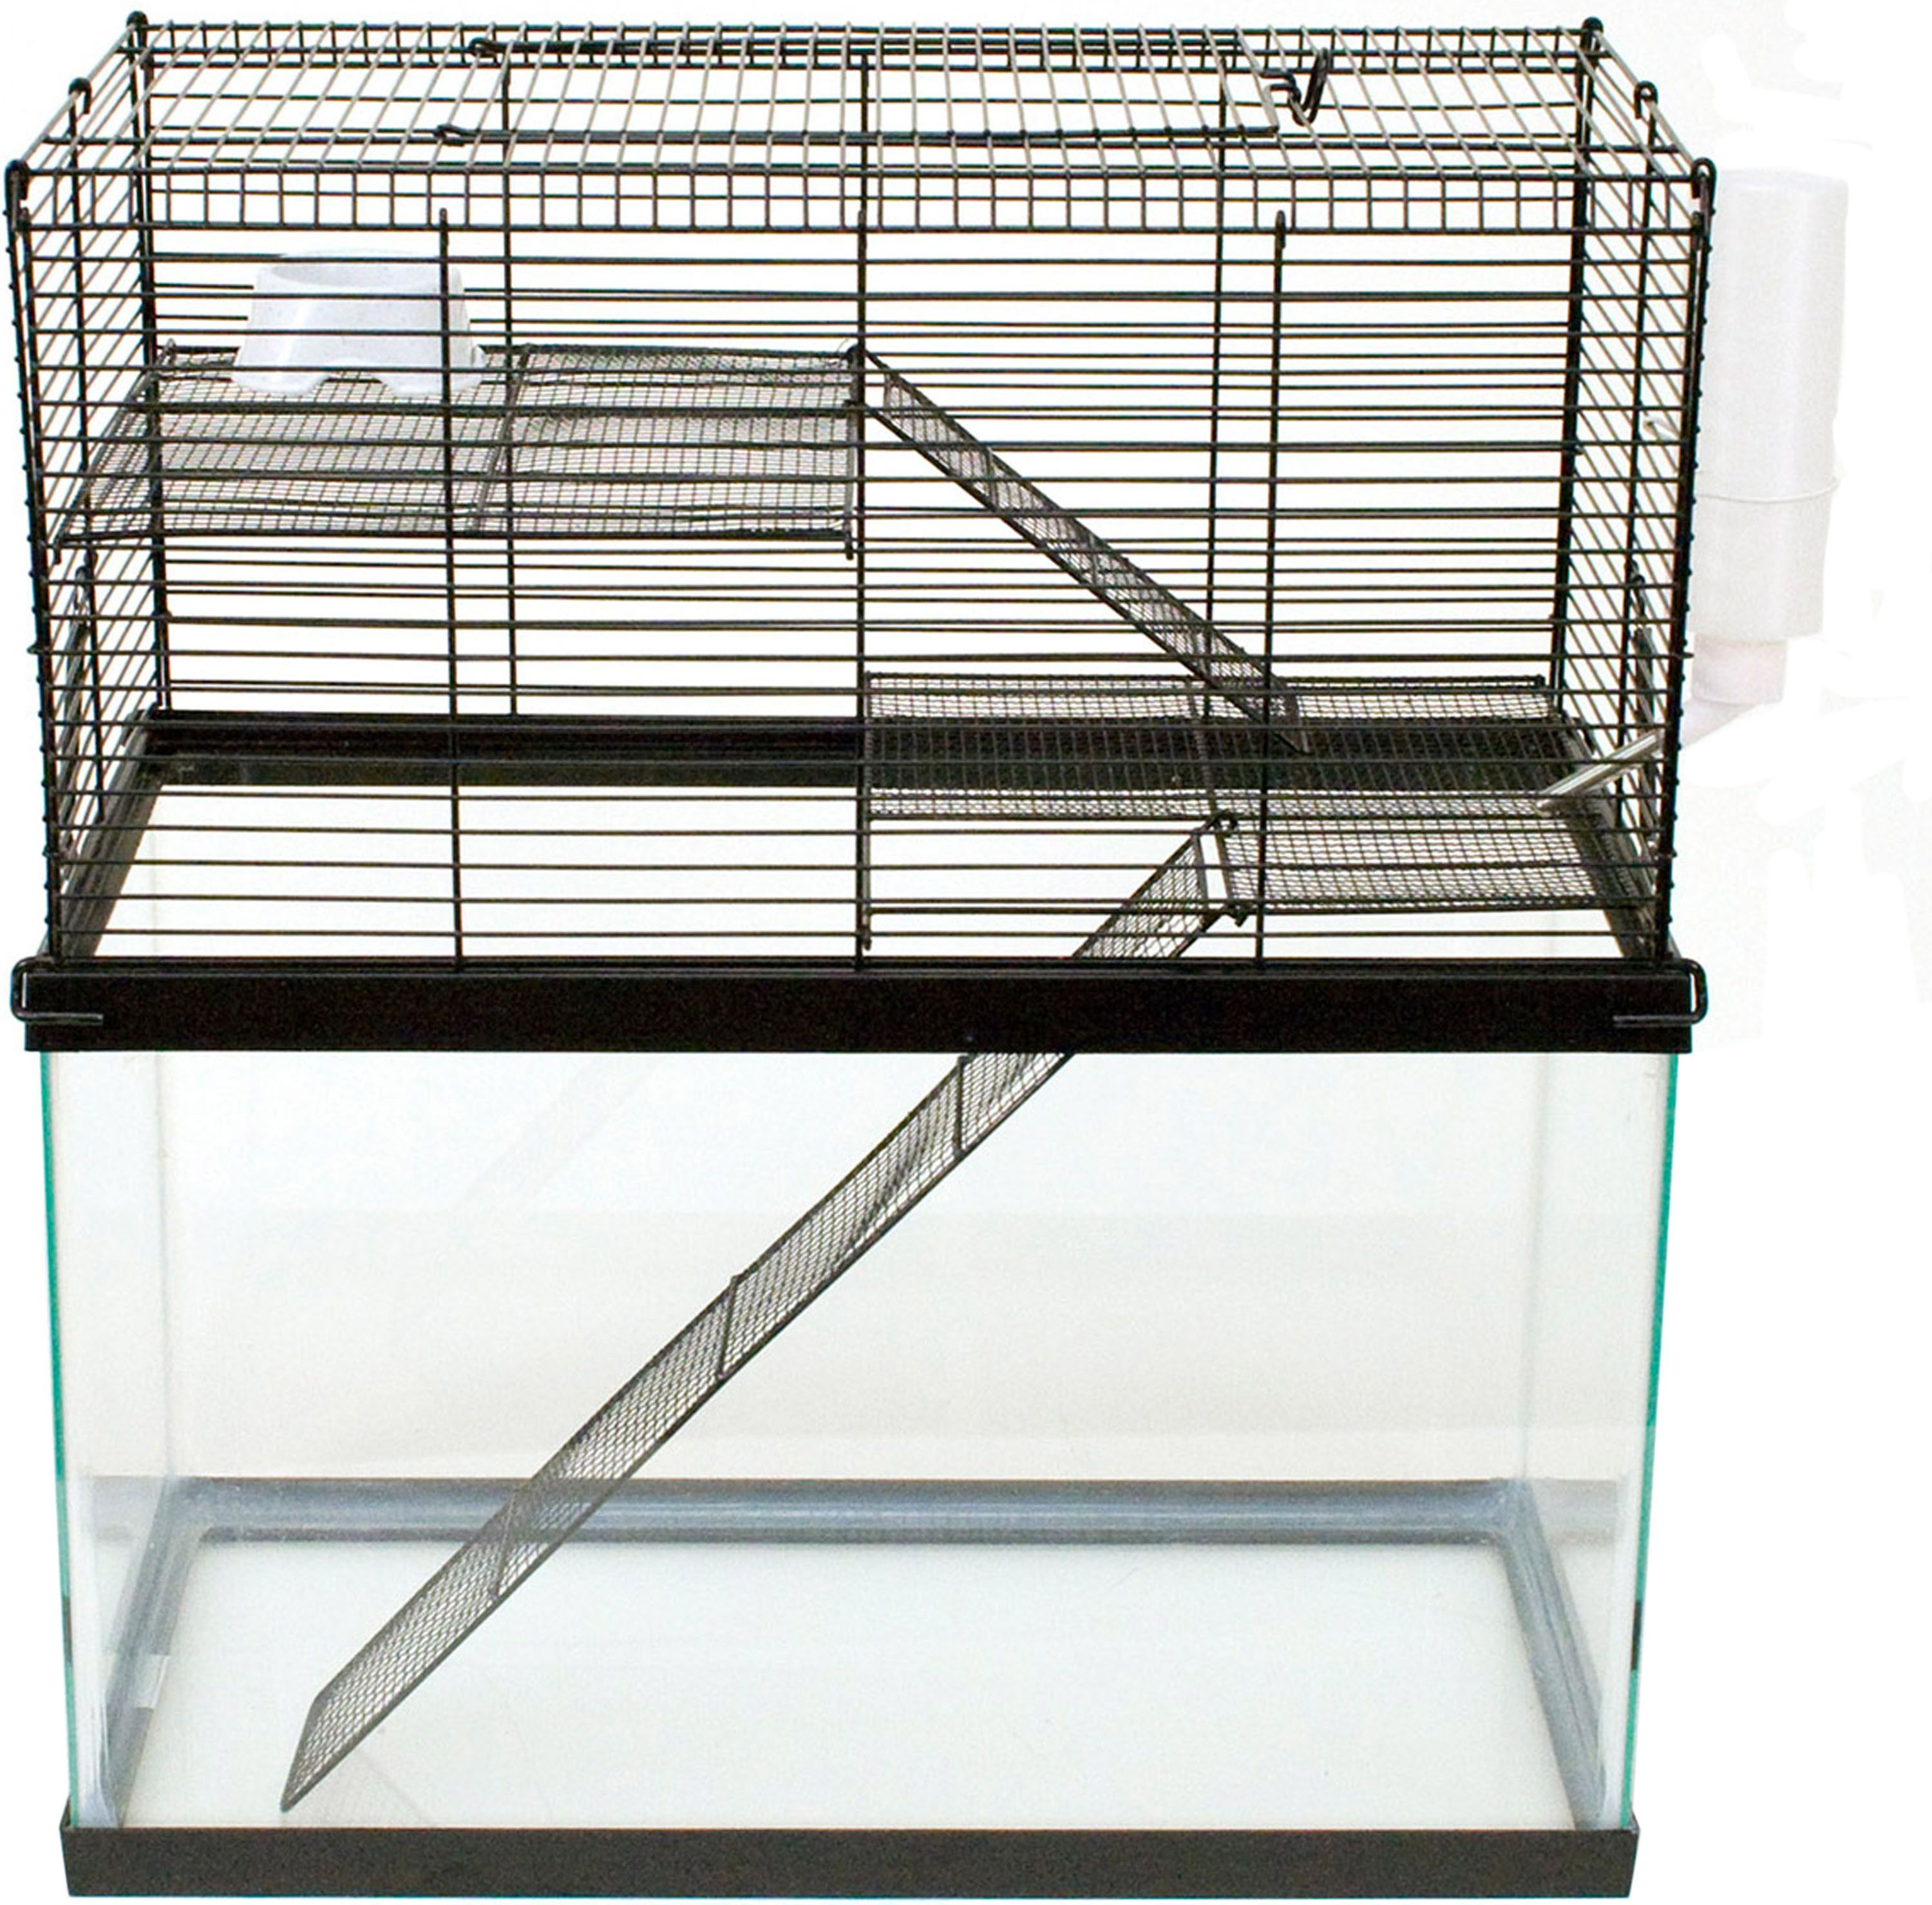 High Rise Small animal cage, Small pets, Pet cage